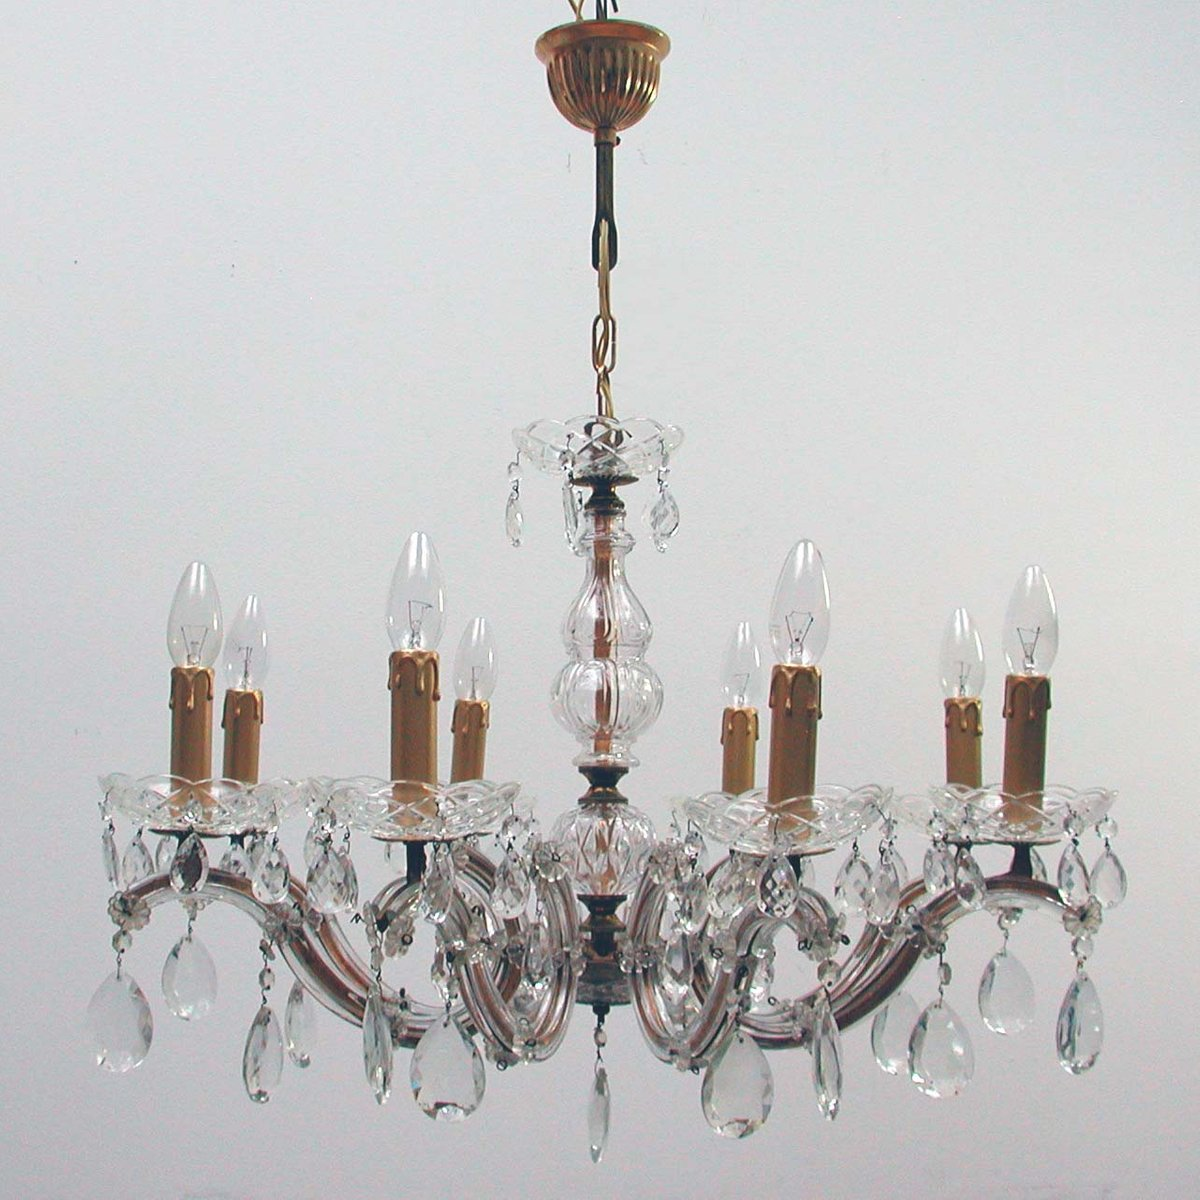 Italian brass and crystal 8 light chandelier 1950s for sale at pamono mozeypictures Choice Image